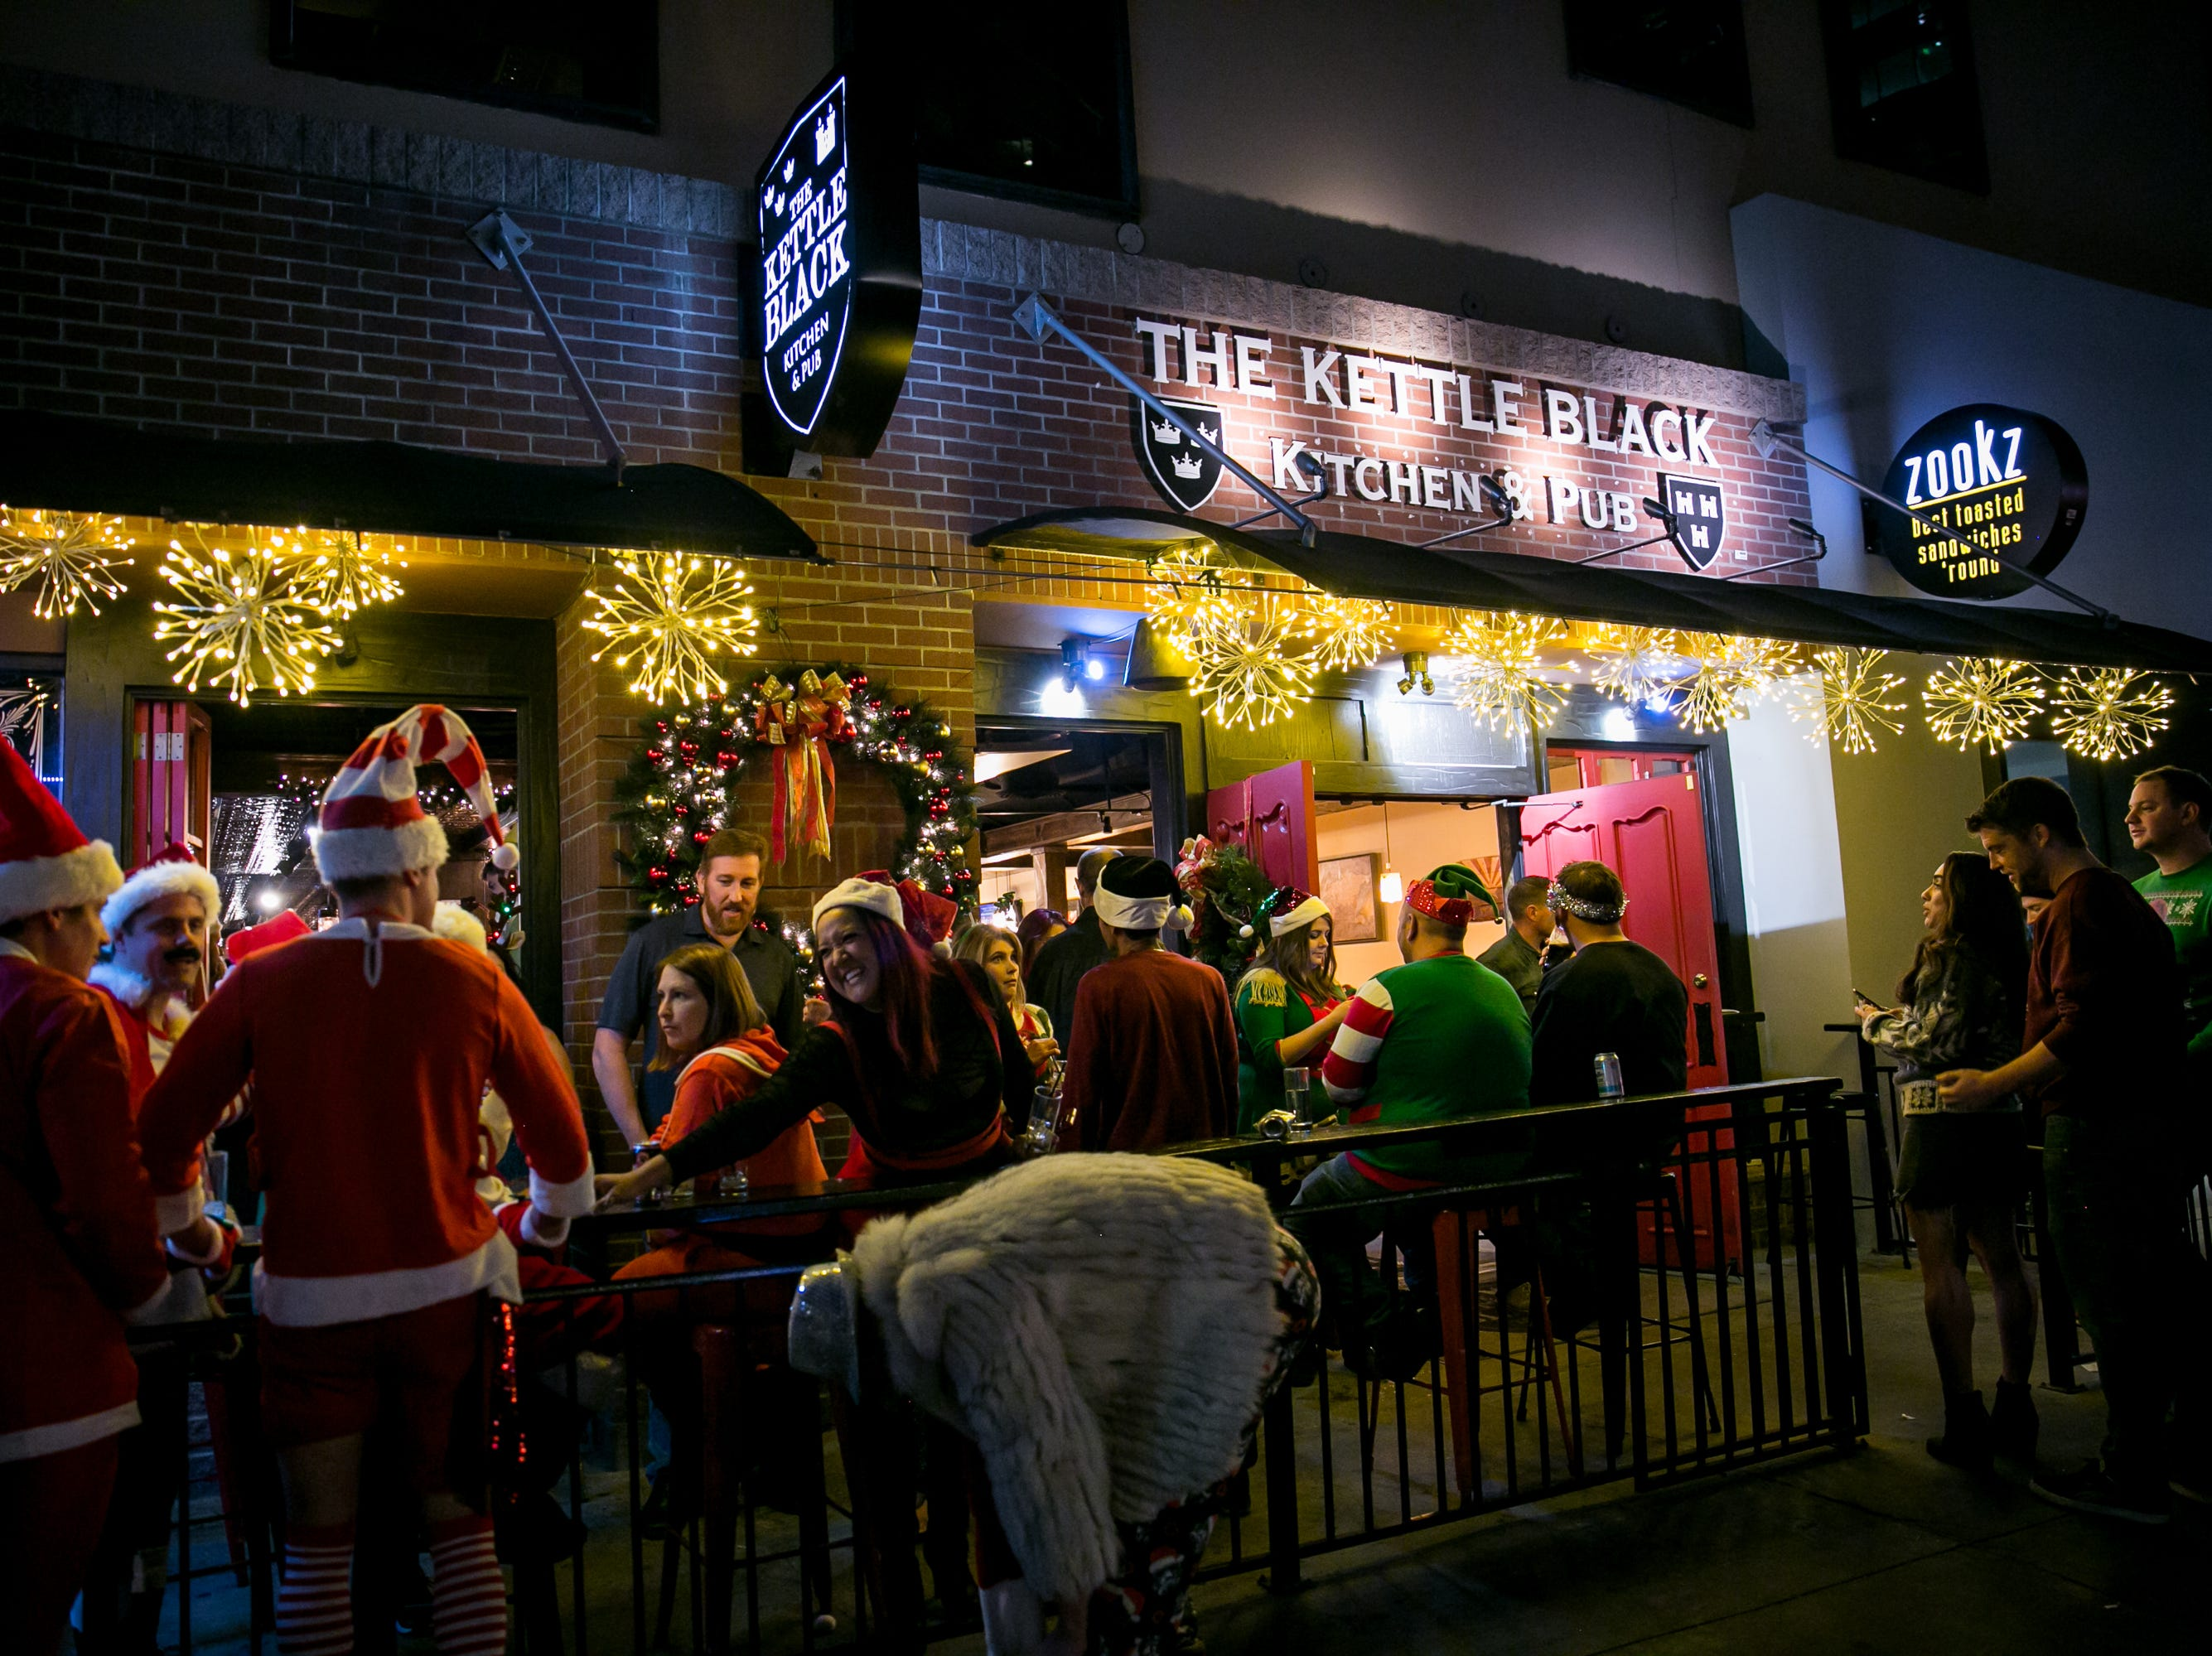 The Kettle Black was a fun hangout spot during Santarchy on Saturday, December 8, 2018.